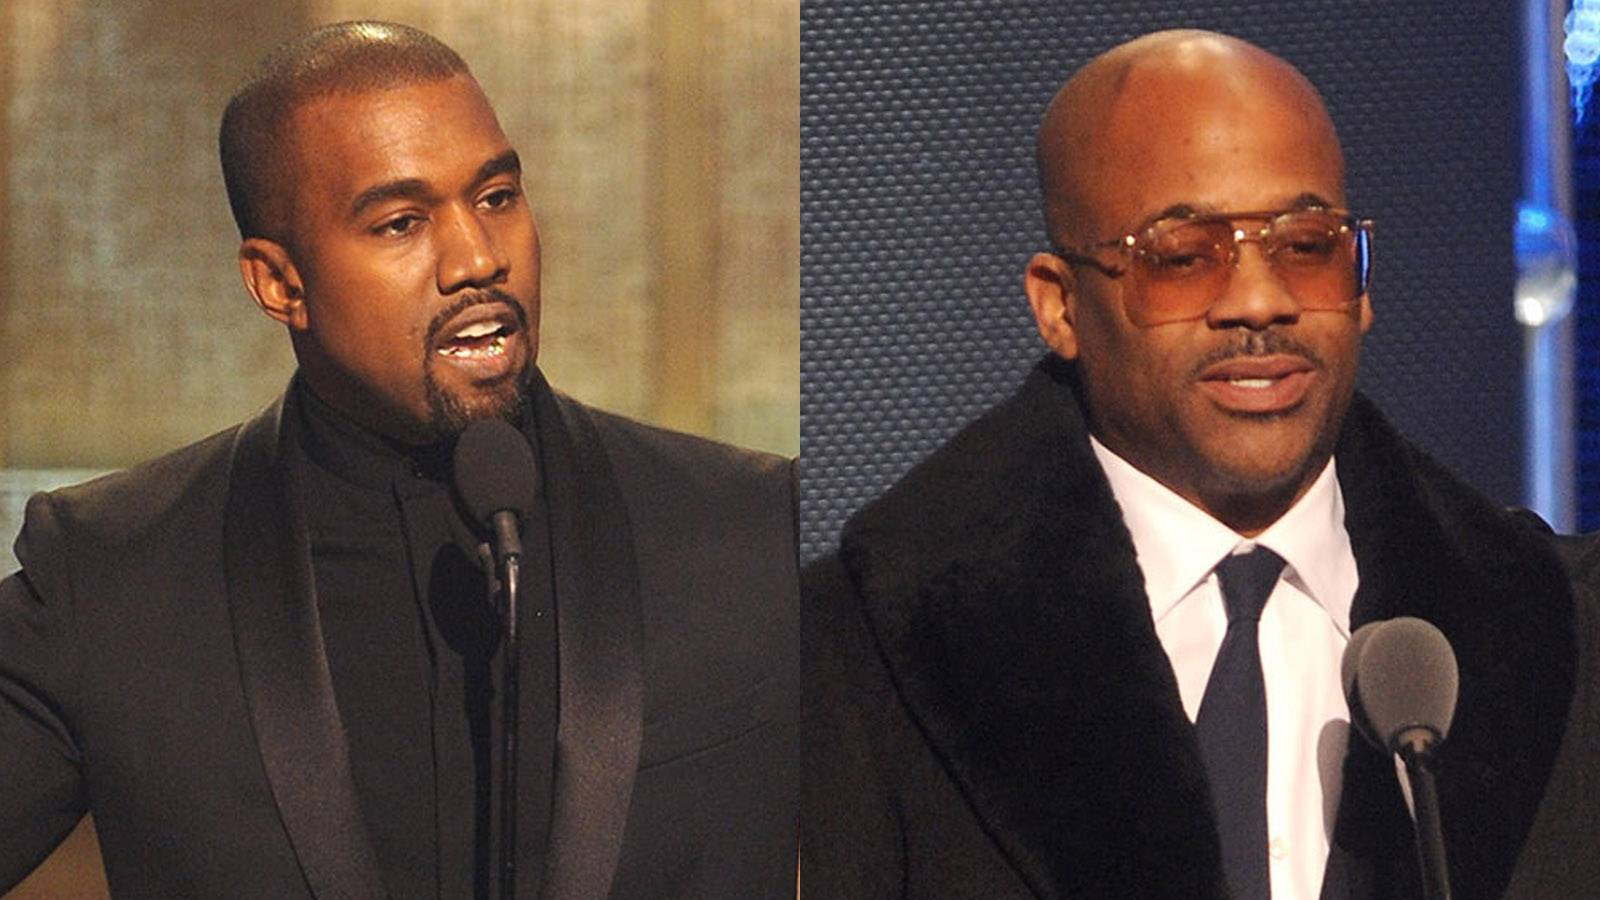 Kanye and Dame Back Together - Kanye West and Damon Dash had a moment on stage over the weekend during a taping of BET Honors. Be sure to tune in on February 23 at 9P/8C.  (Photos: Brad Barket/BET/Getty Images for BET)